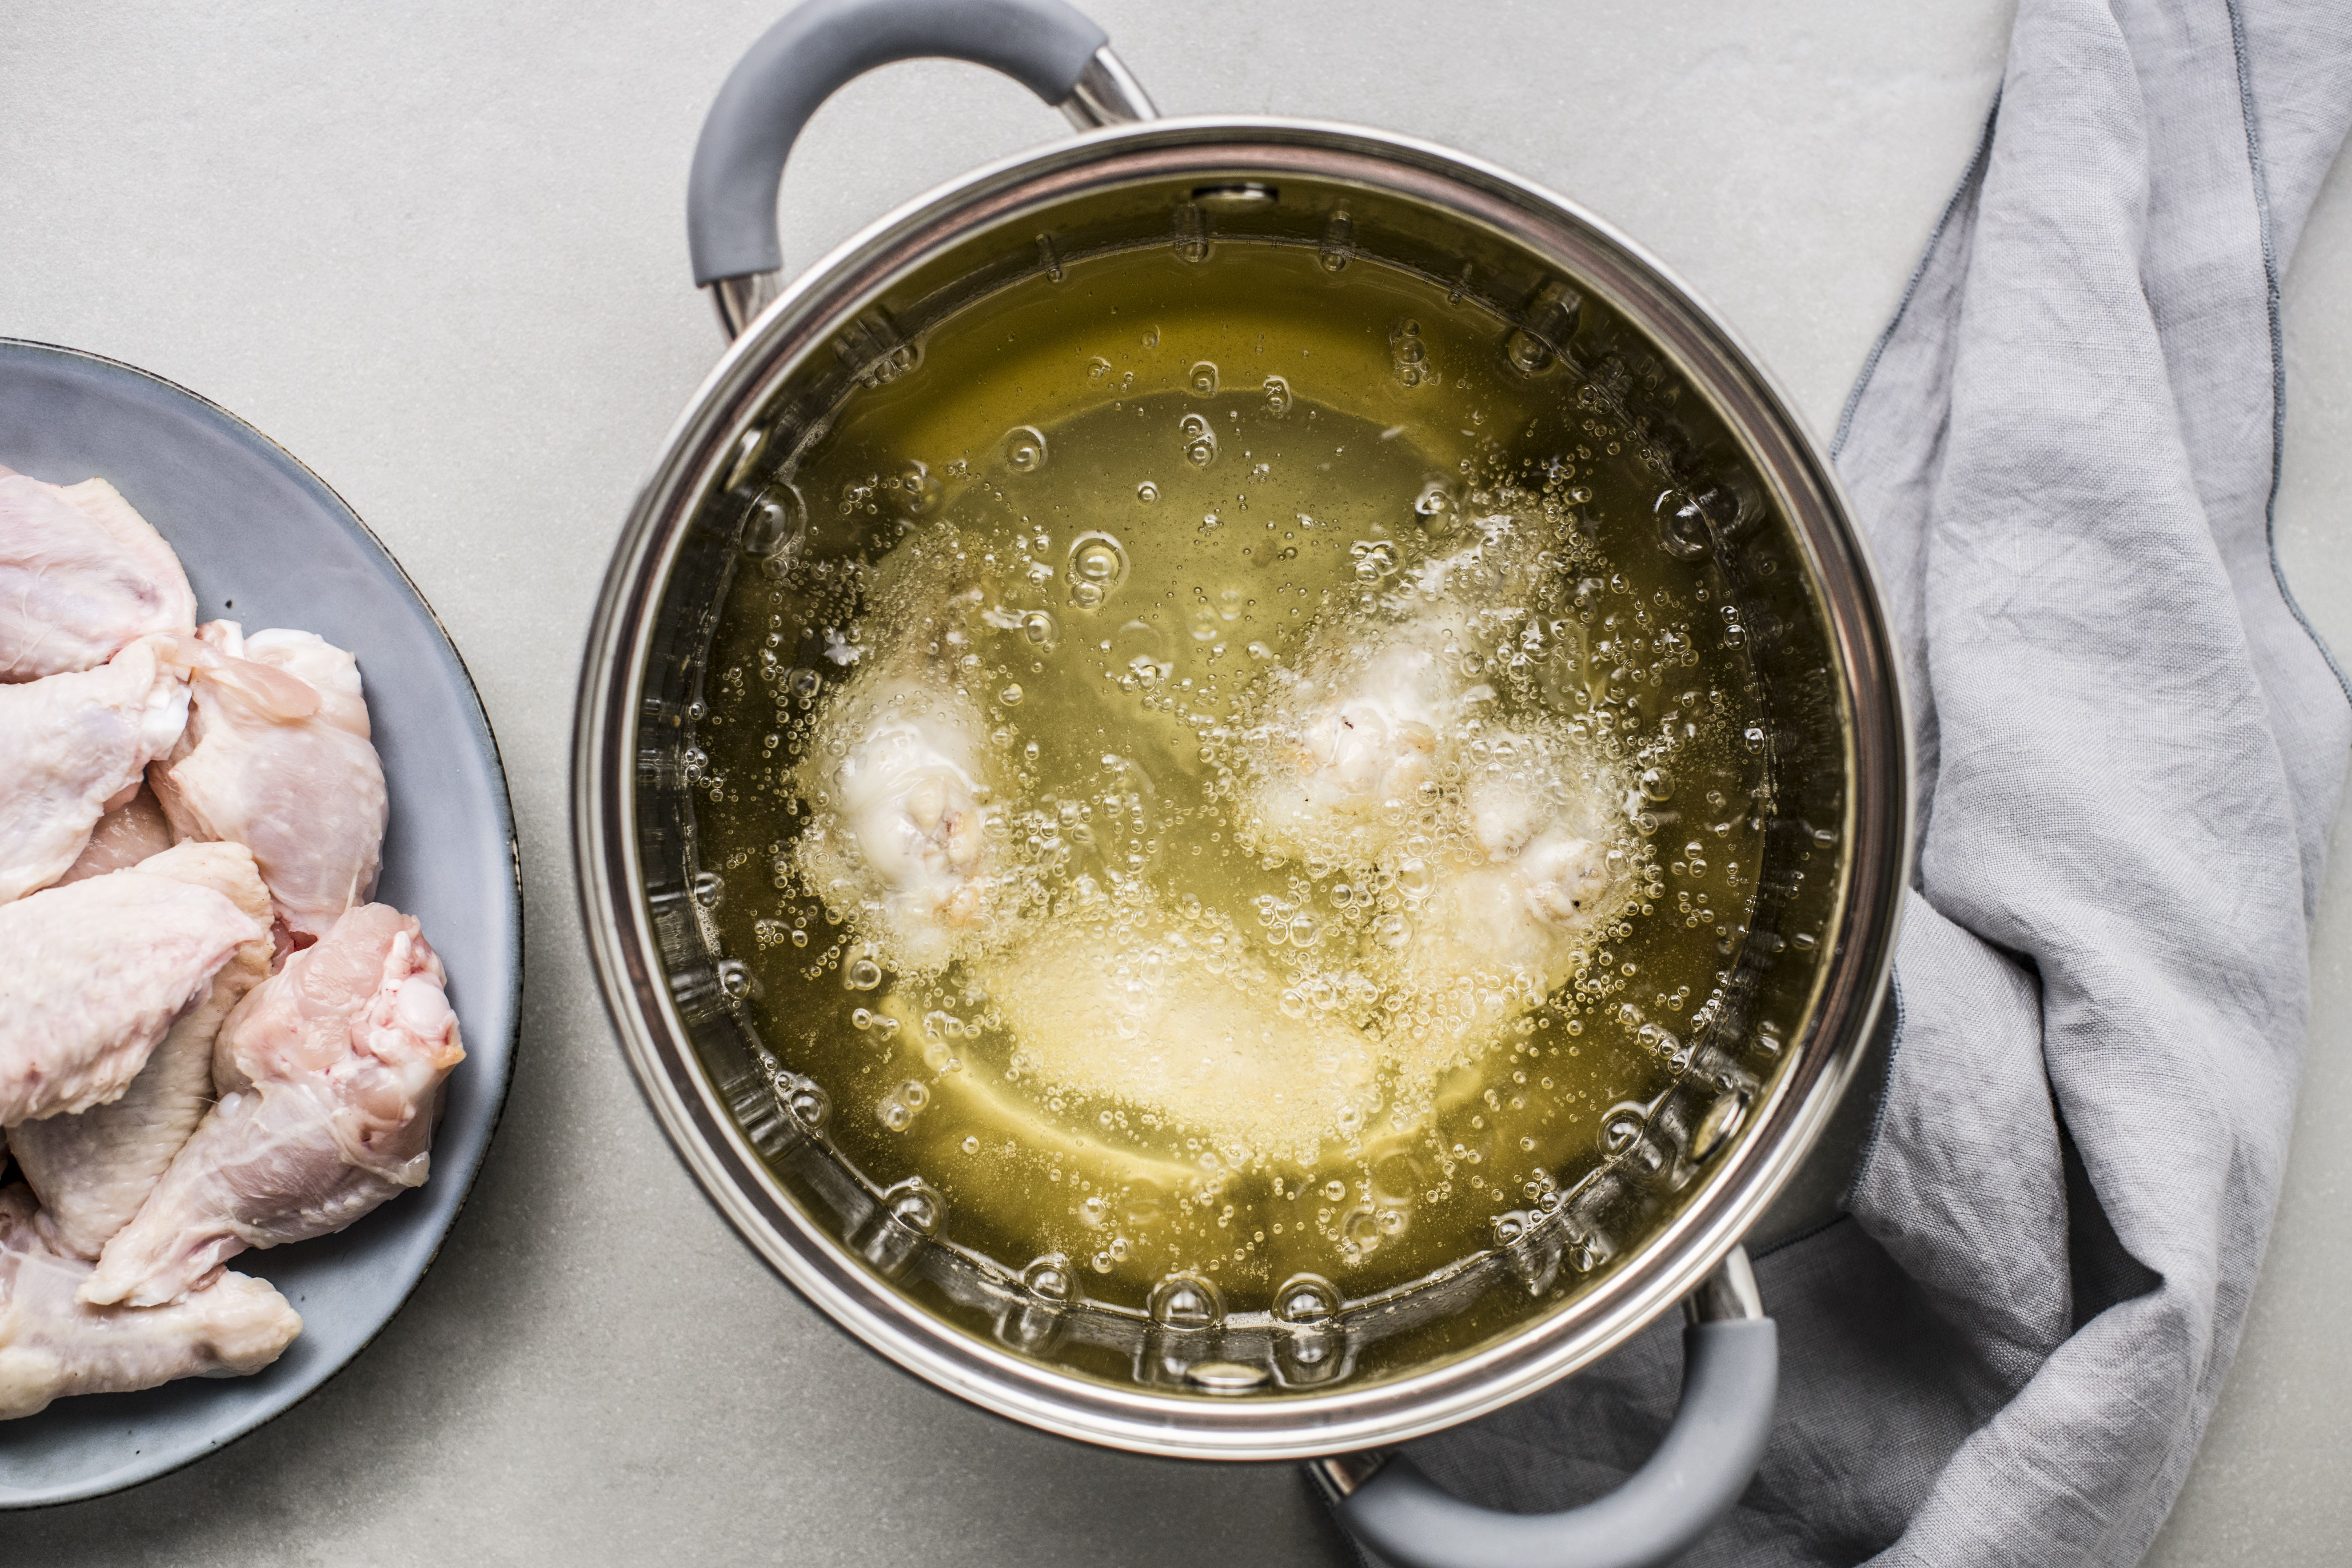 Place a few wings at a time in the hot oil to fry